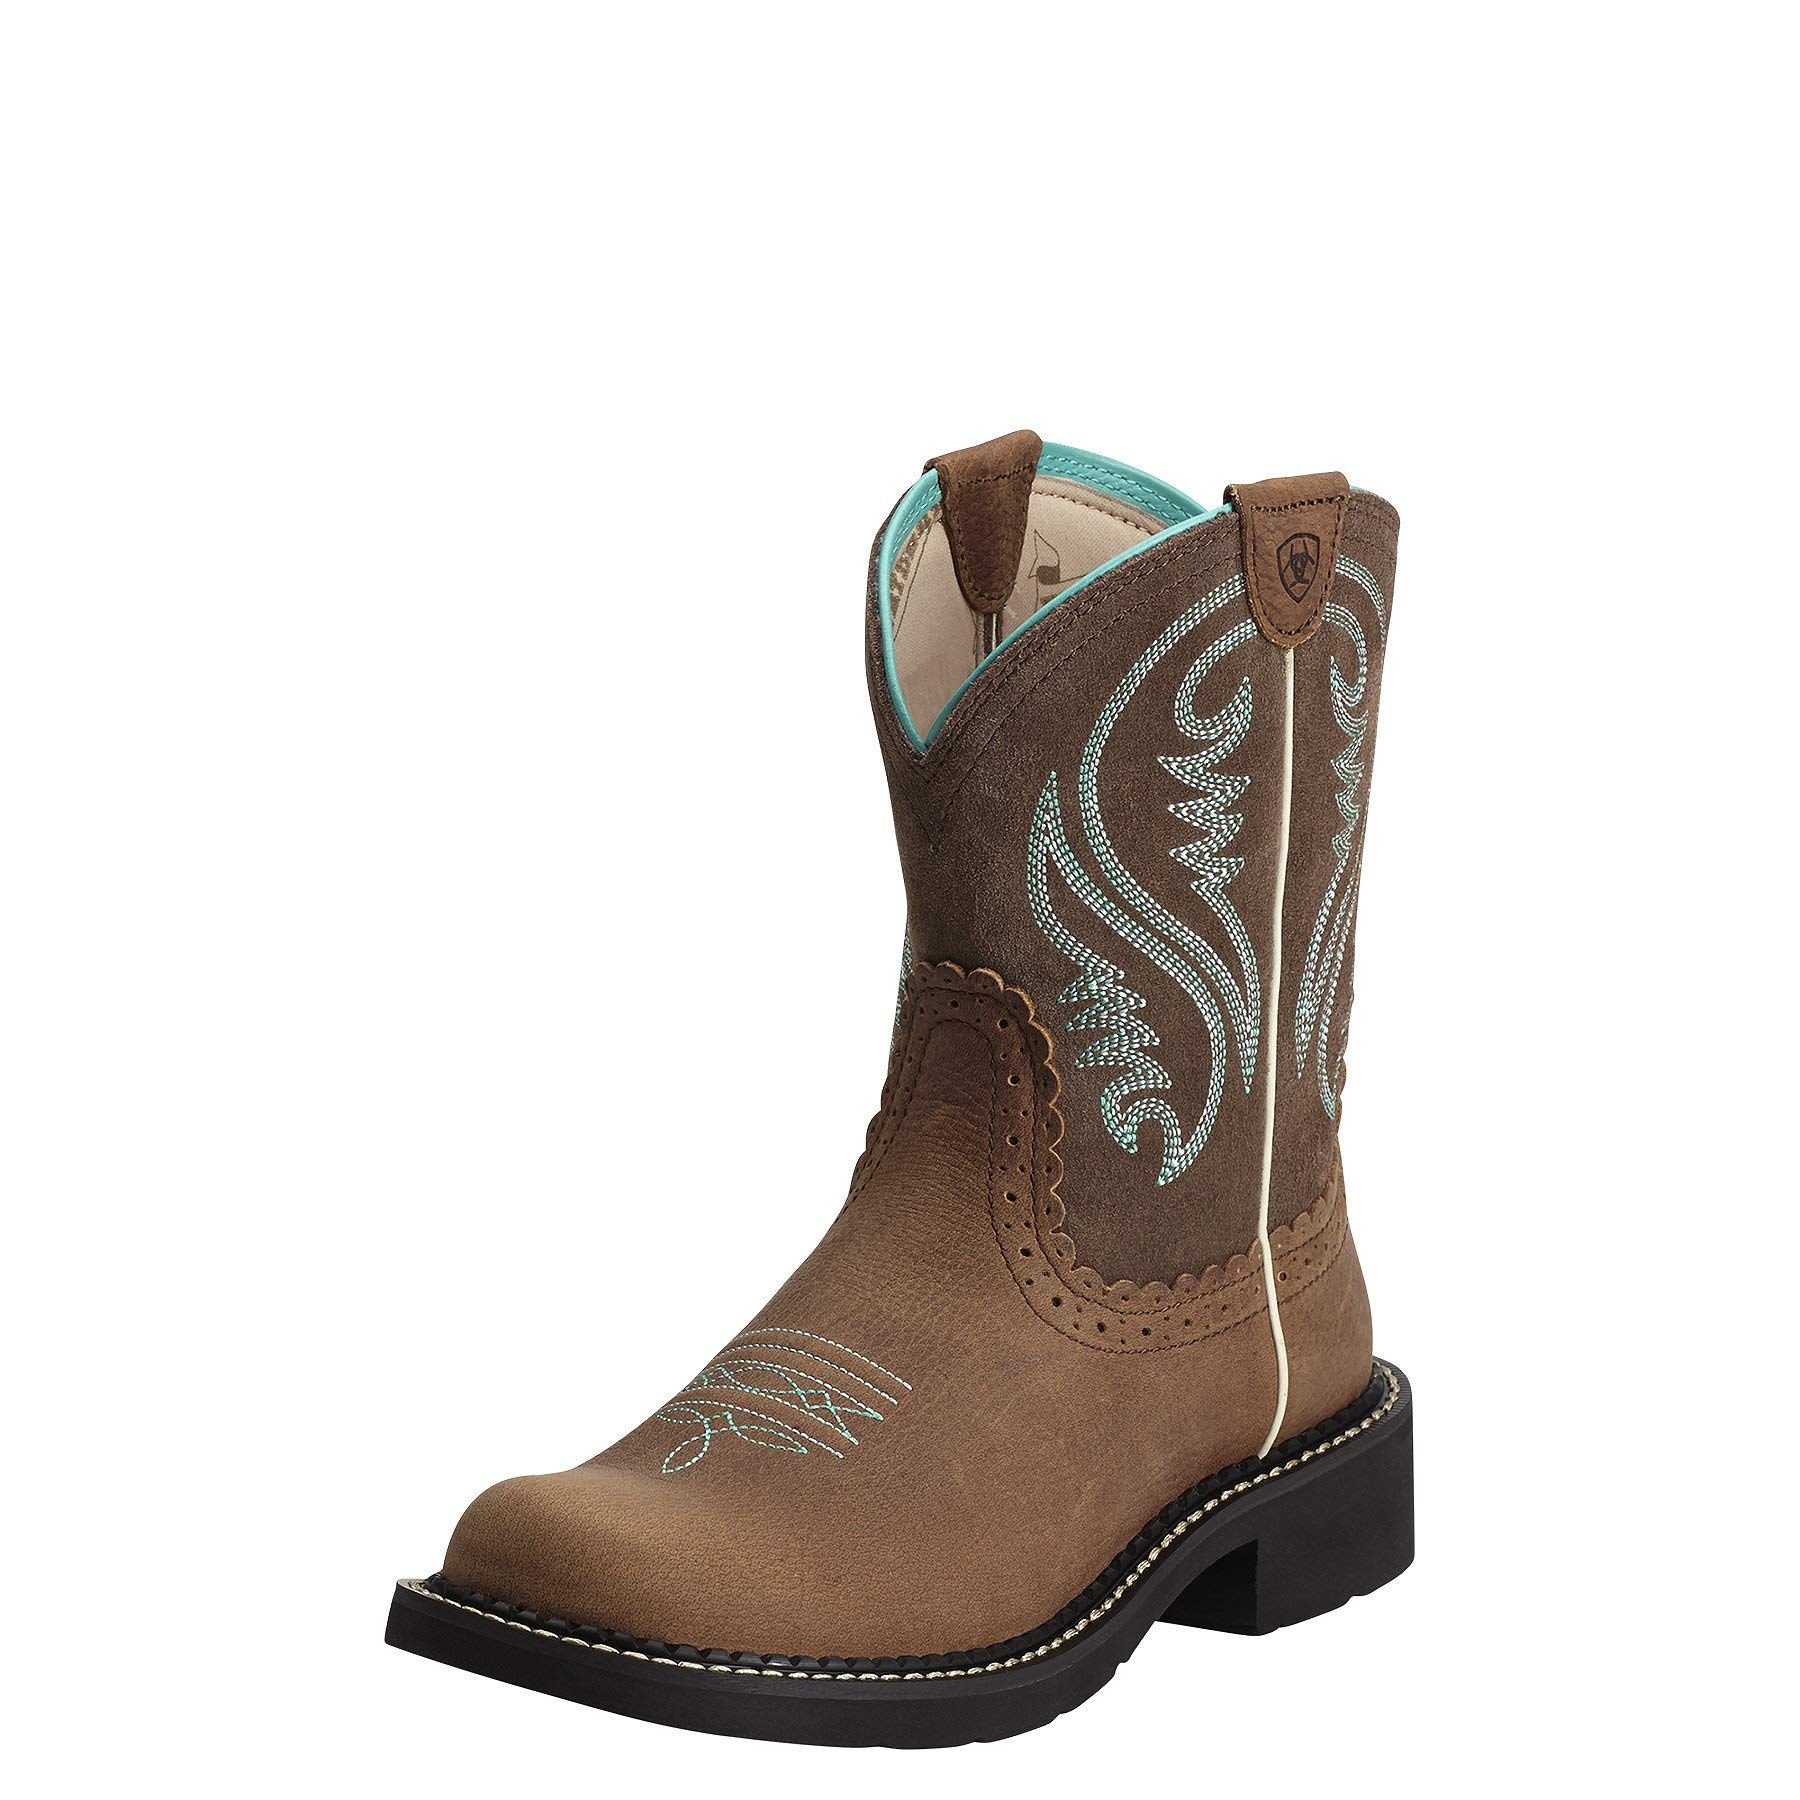 Ariat Women's Fatbaby Heritage Western Cowboy Boot, Tan Rowdy/Tan, 9 M US by ARIAT